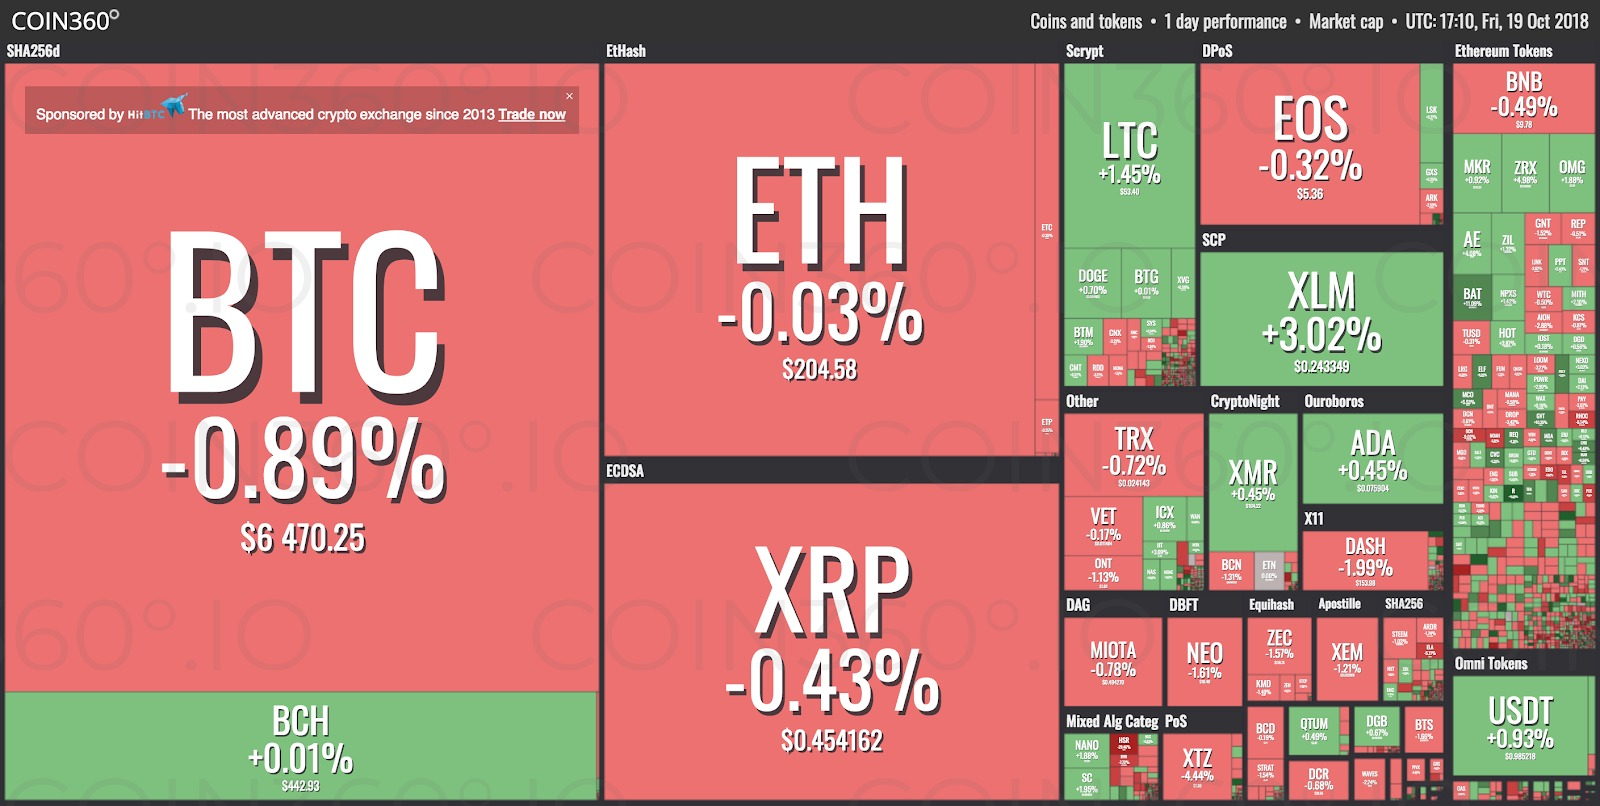 Crypto Markets See Minor Losses as Relative Calm Continues, Bitcoin Slips Below $6,500